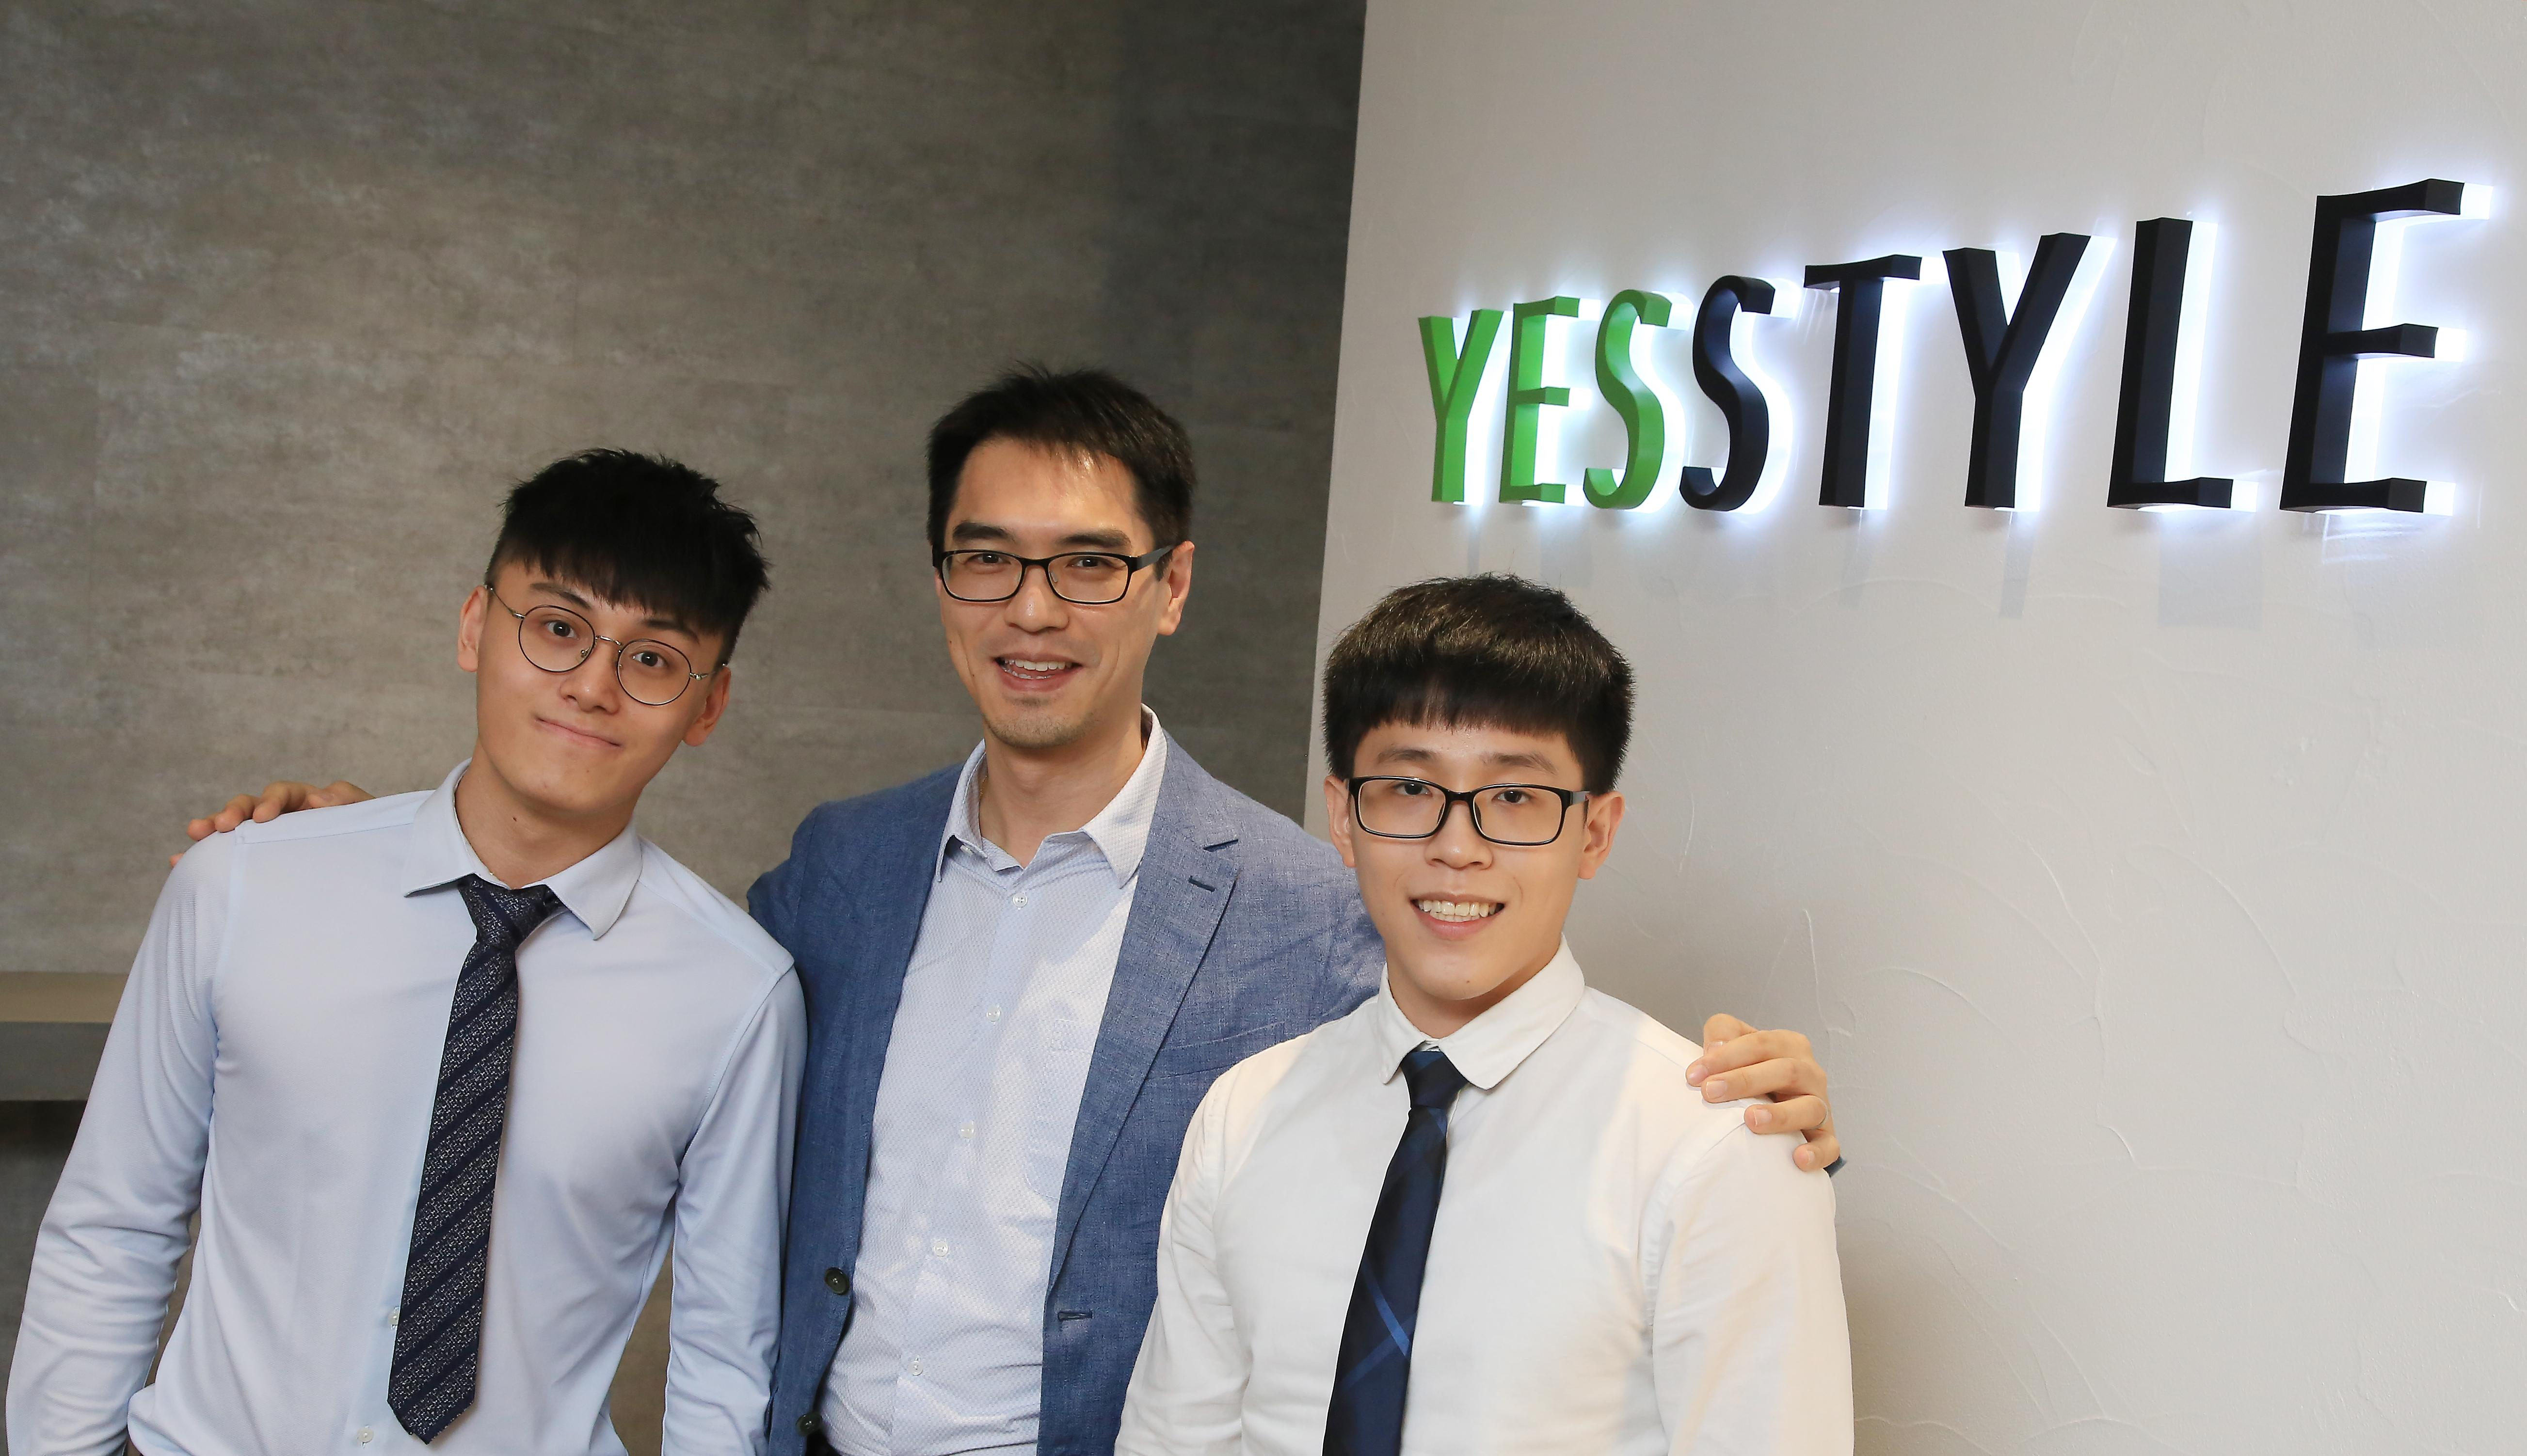 FutureNow's founder and chief executive Raymond YEUNG was extremely impressed with the performance of HKUST interns.